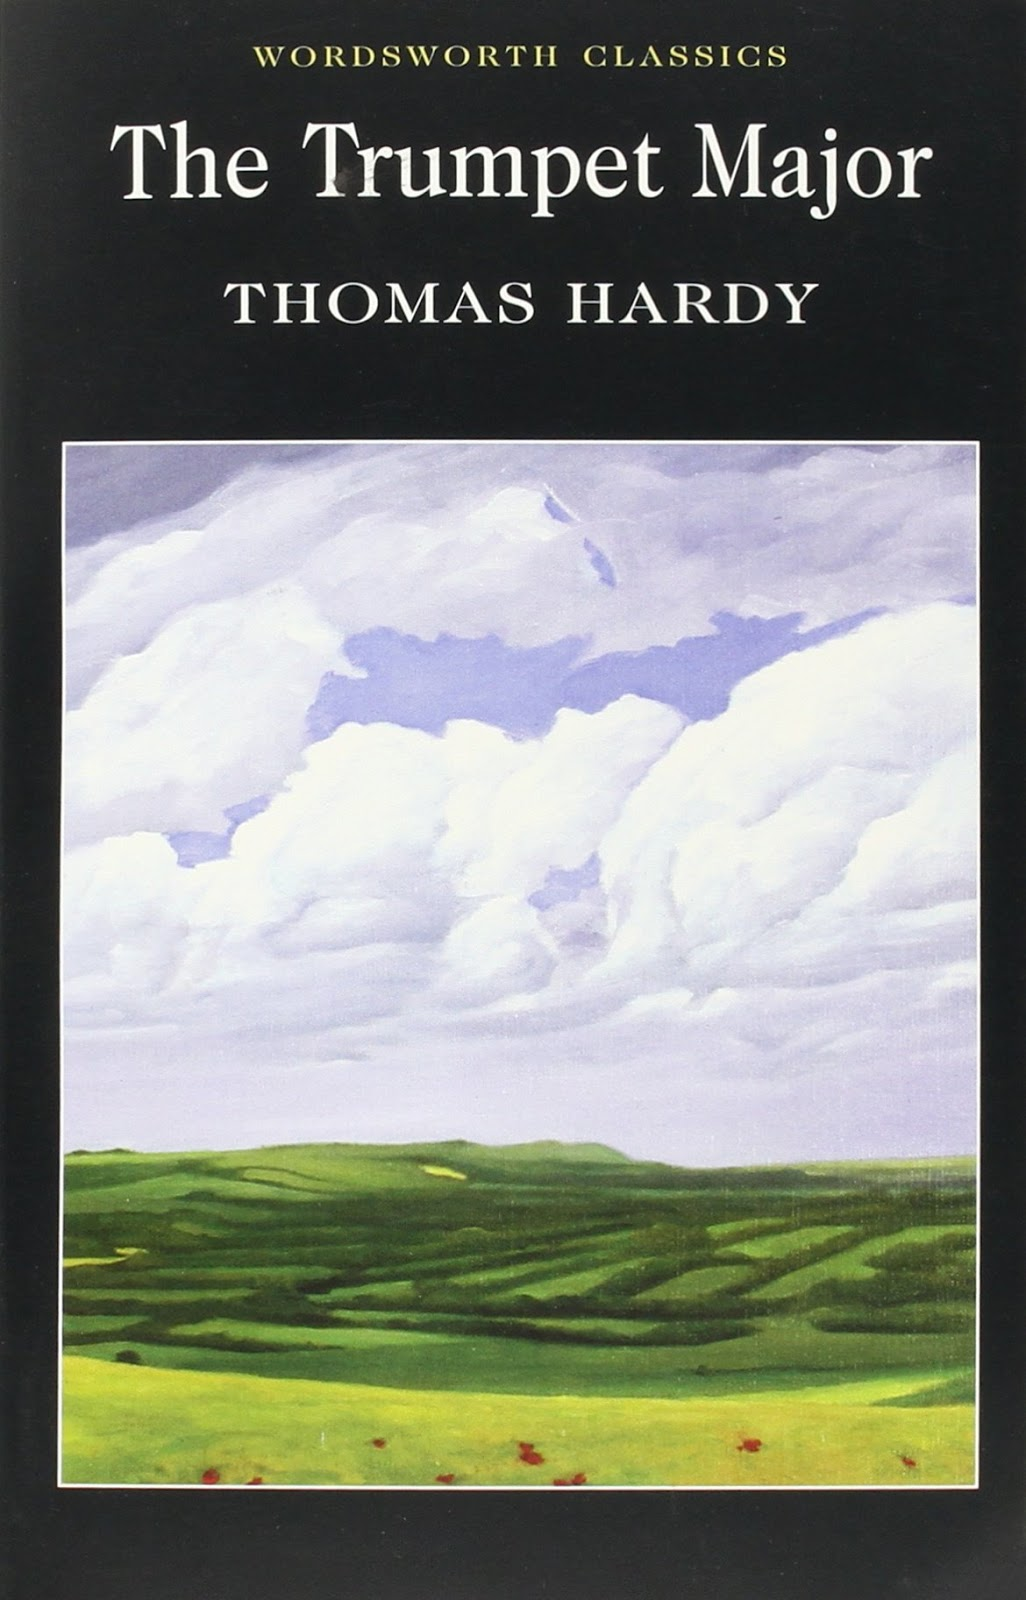 The Trumpet Major By Thomas Hardy In My Mid Teens I Adored Studied Tess Of DUbervilles At School And Went On To Read All Hardys